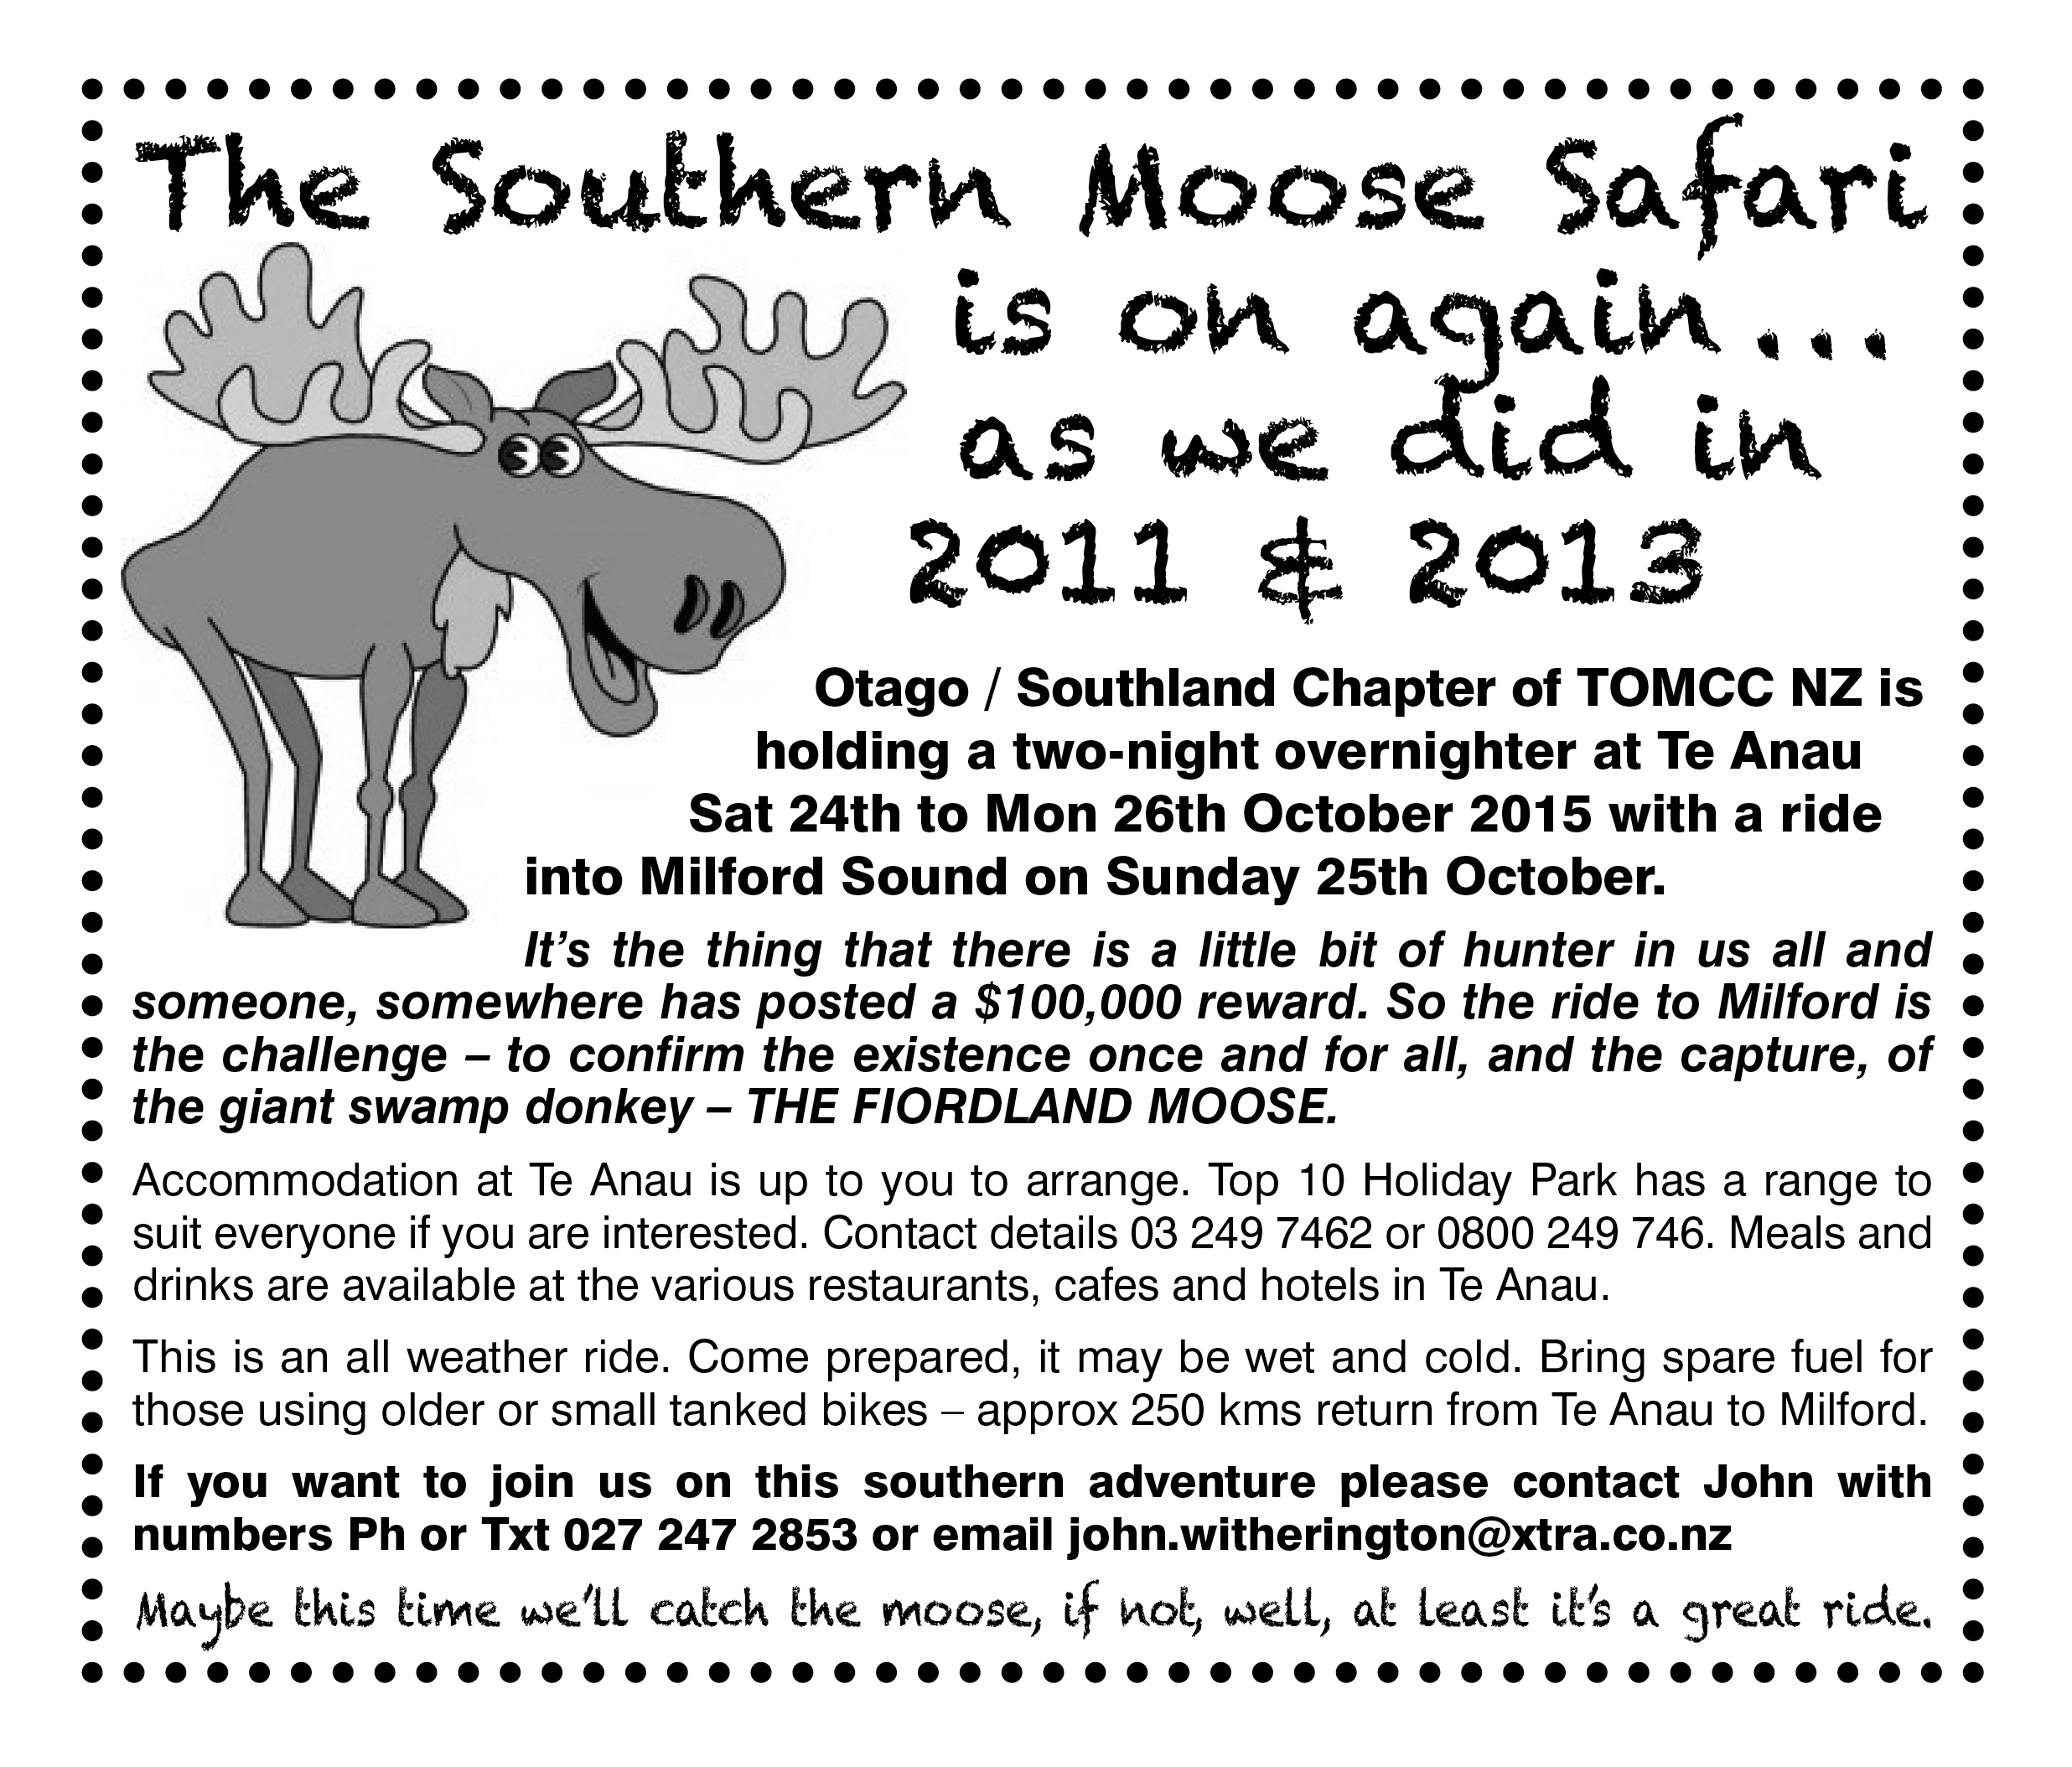 2015 moose safari